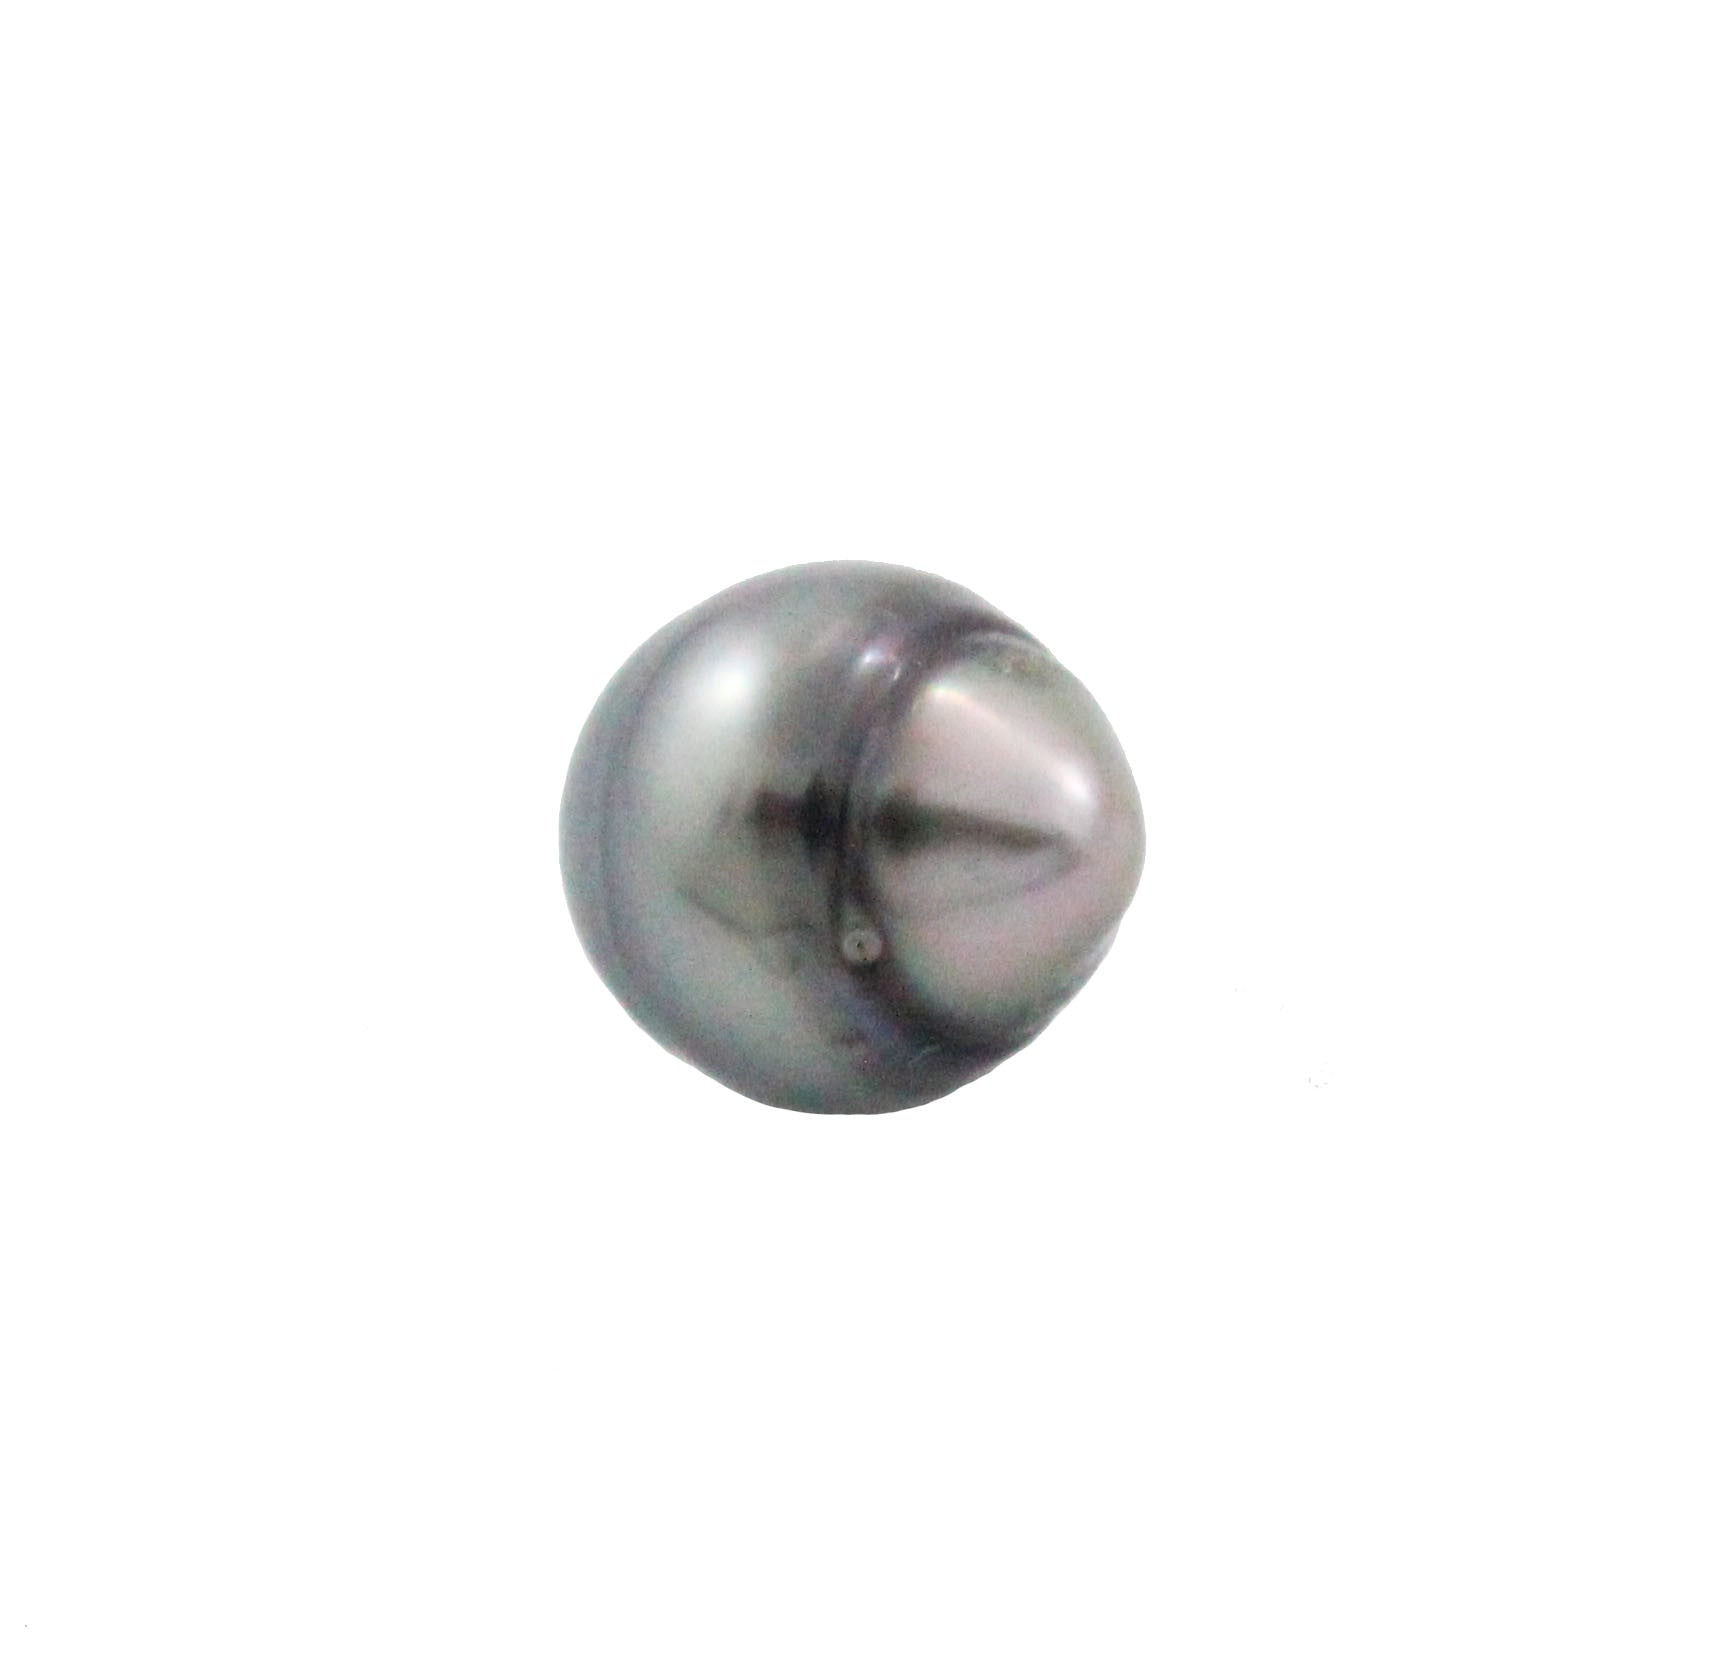 Tahitian pearl undrilled 1.05gr mm 10x8.92mm - Purchase only with custom order - Sarah Hughes - 3